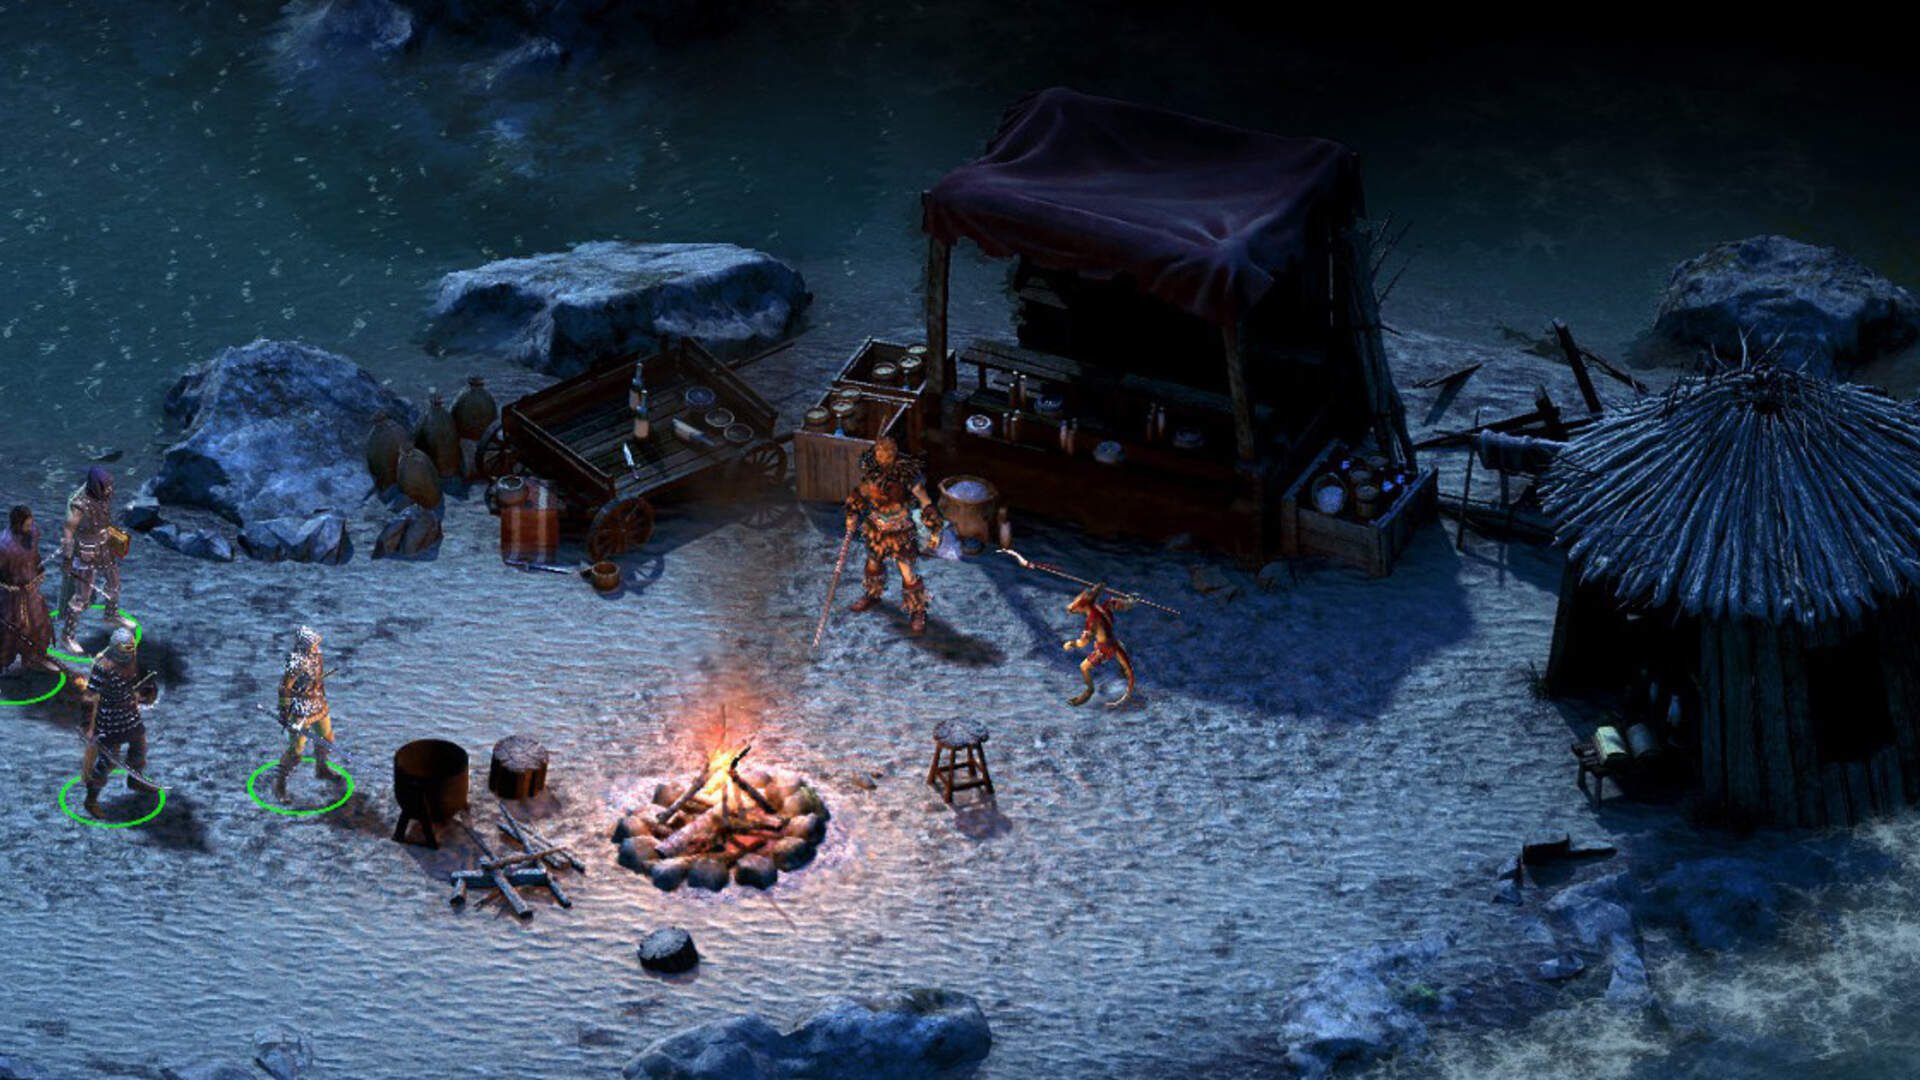 Pillars of Eternity Side Quest Guide - Act II: Copperlane, Defiance Bay, and First Fires